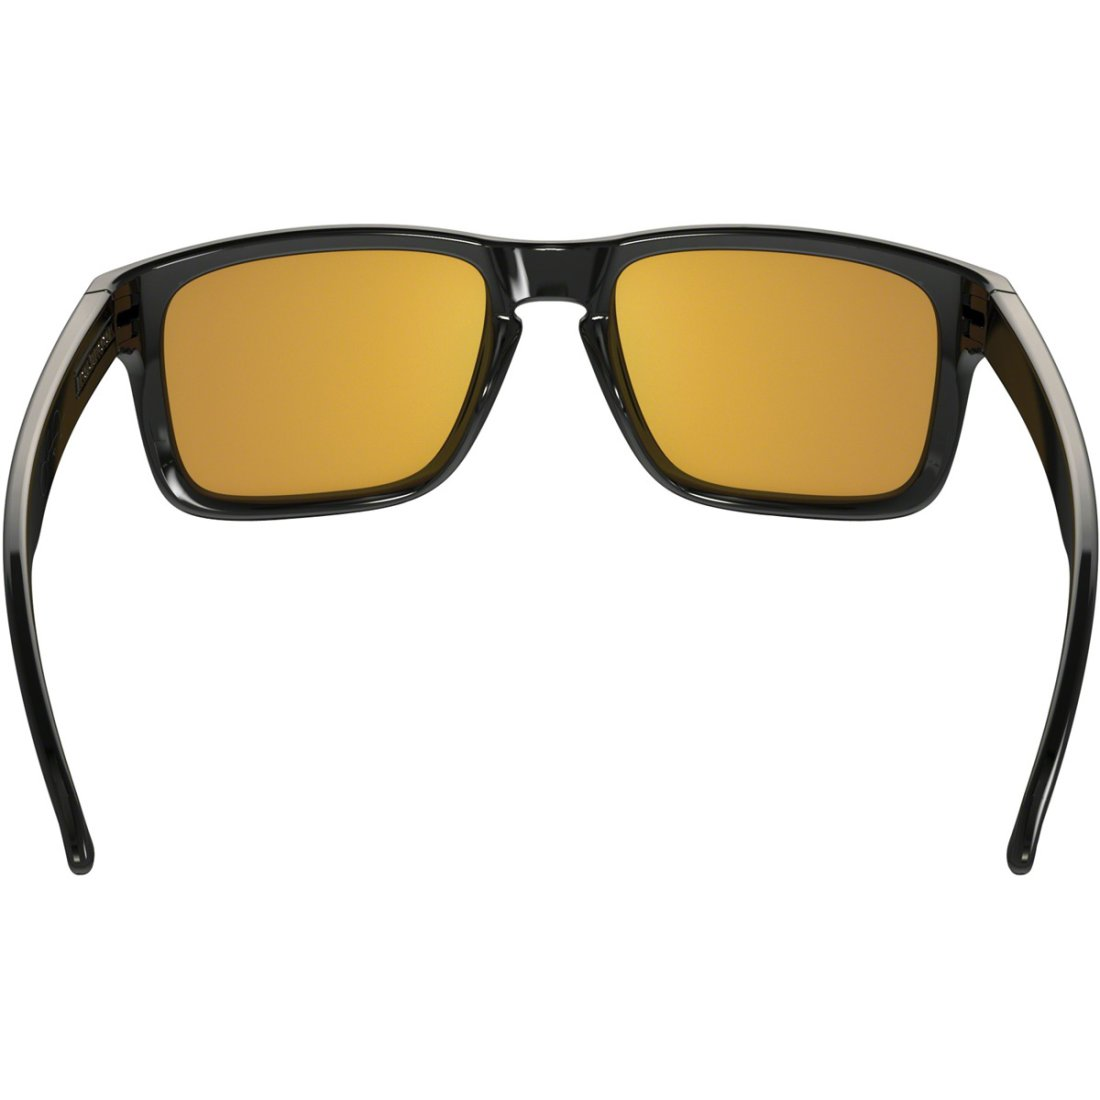 Lunettes de soleil OAKLEY Fuel Cell Polished Black Ink / Emerald Iridium UNICA